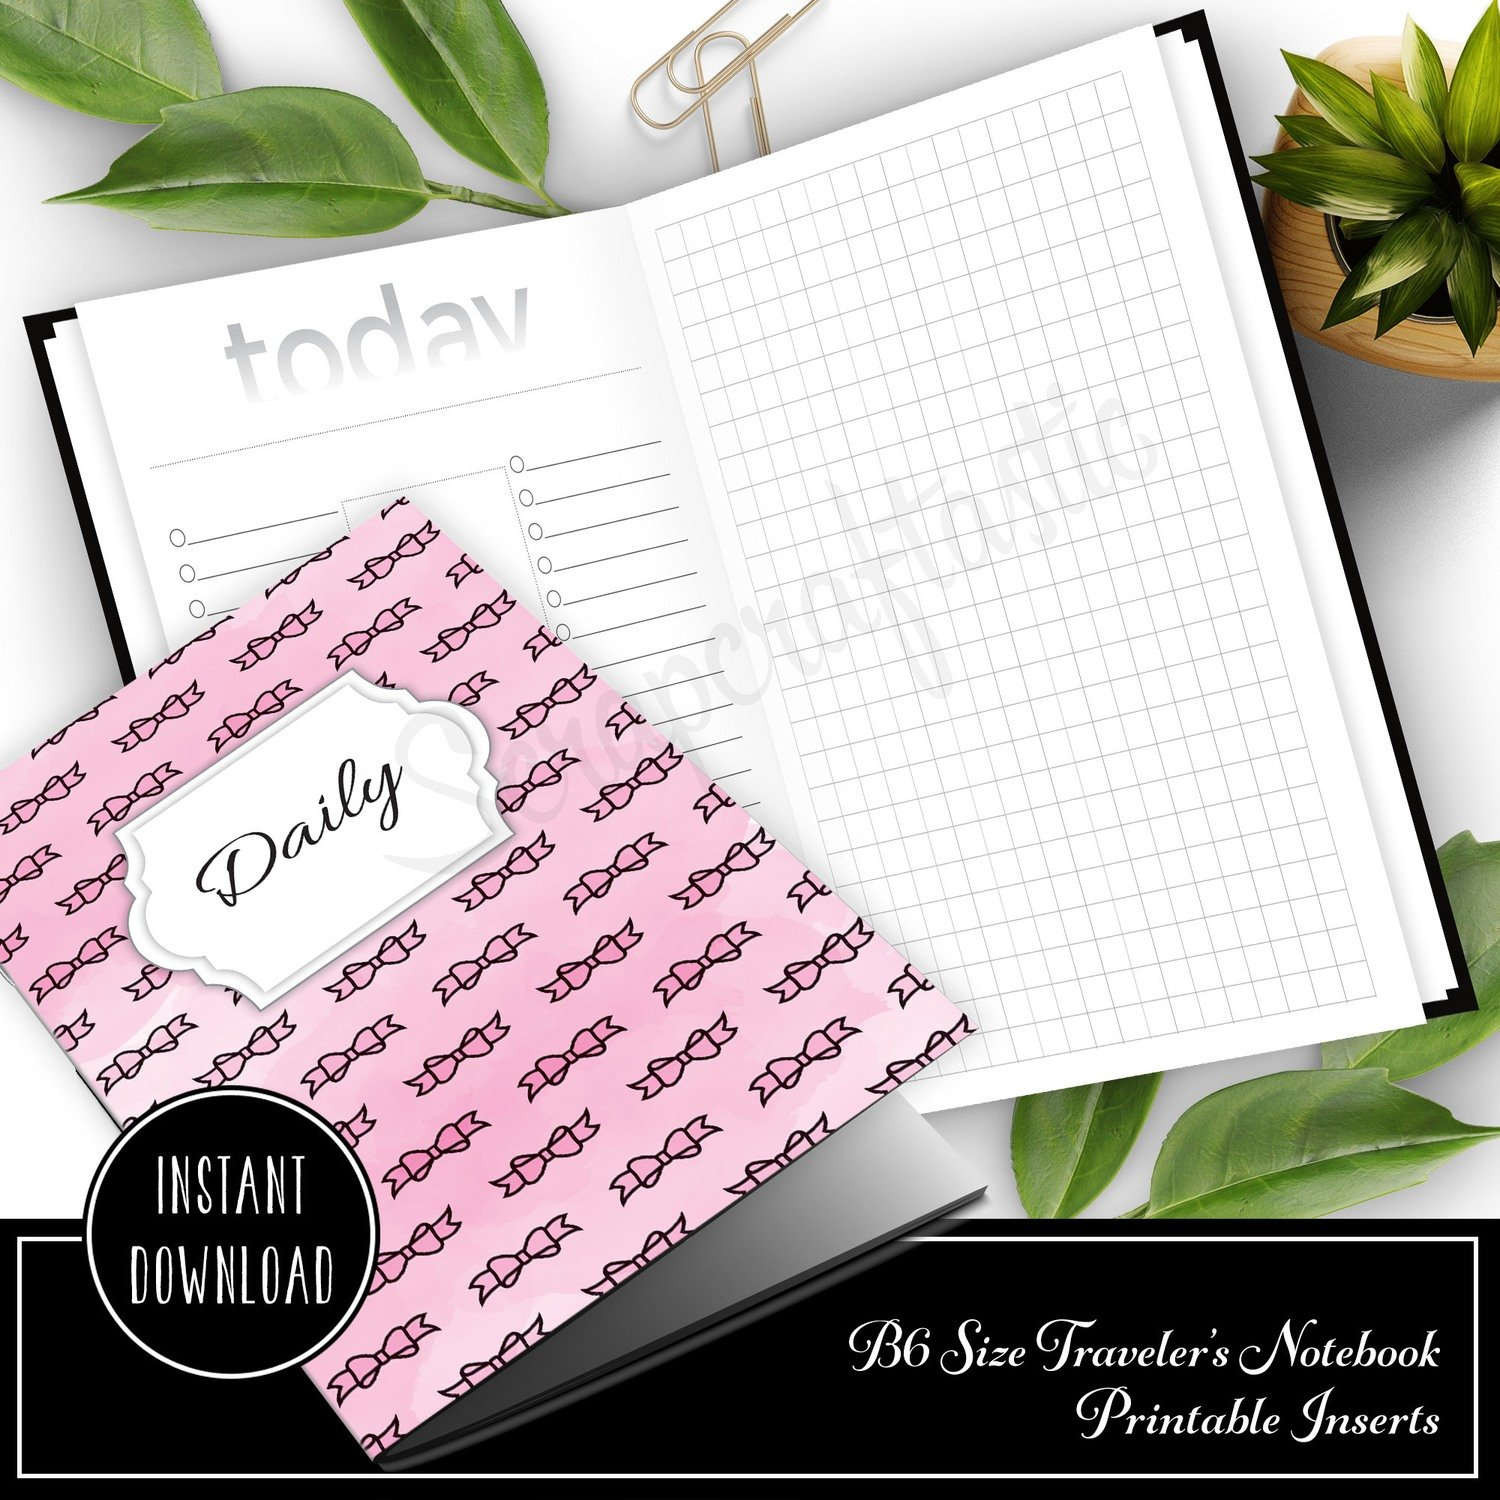 Daily Lists, Column and Grid B6 Traveler's Notebook Printable Inserts